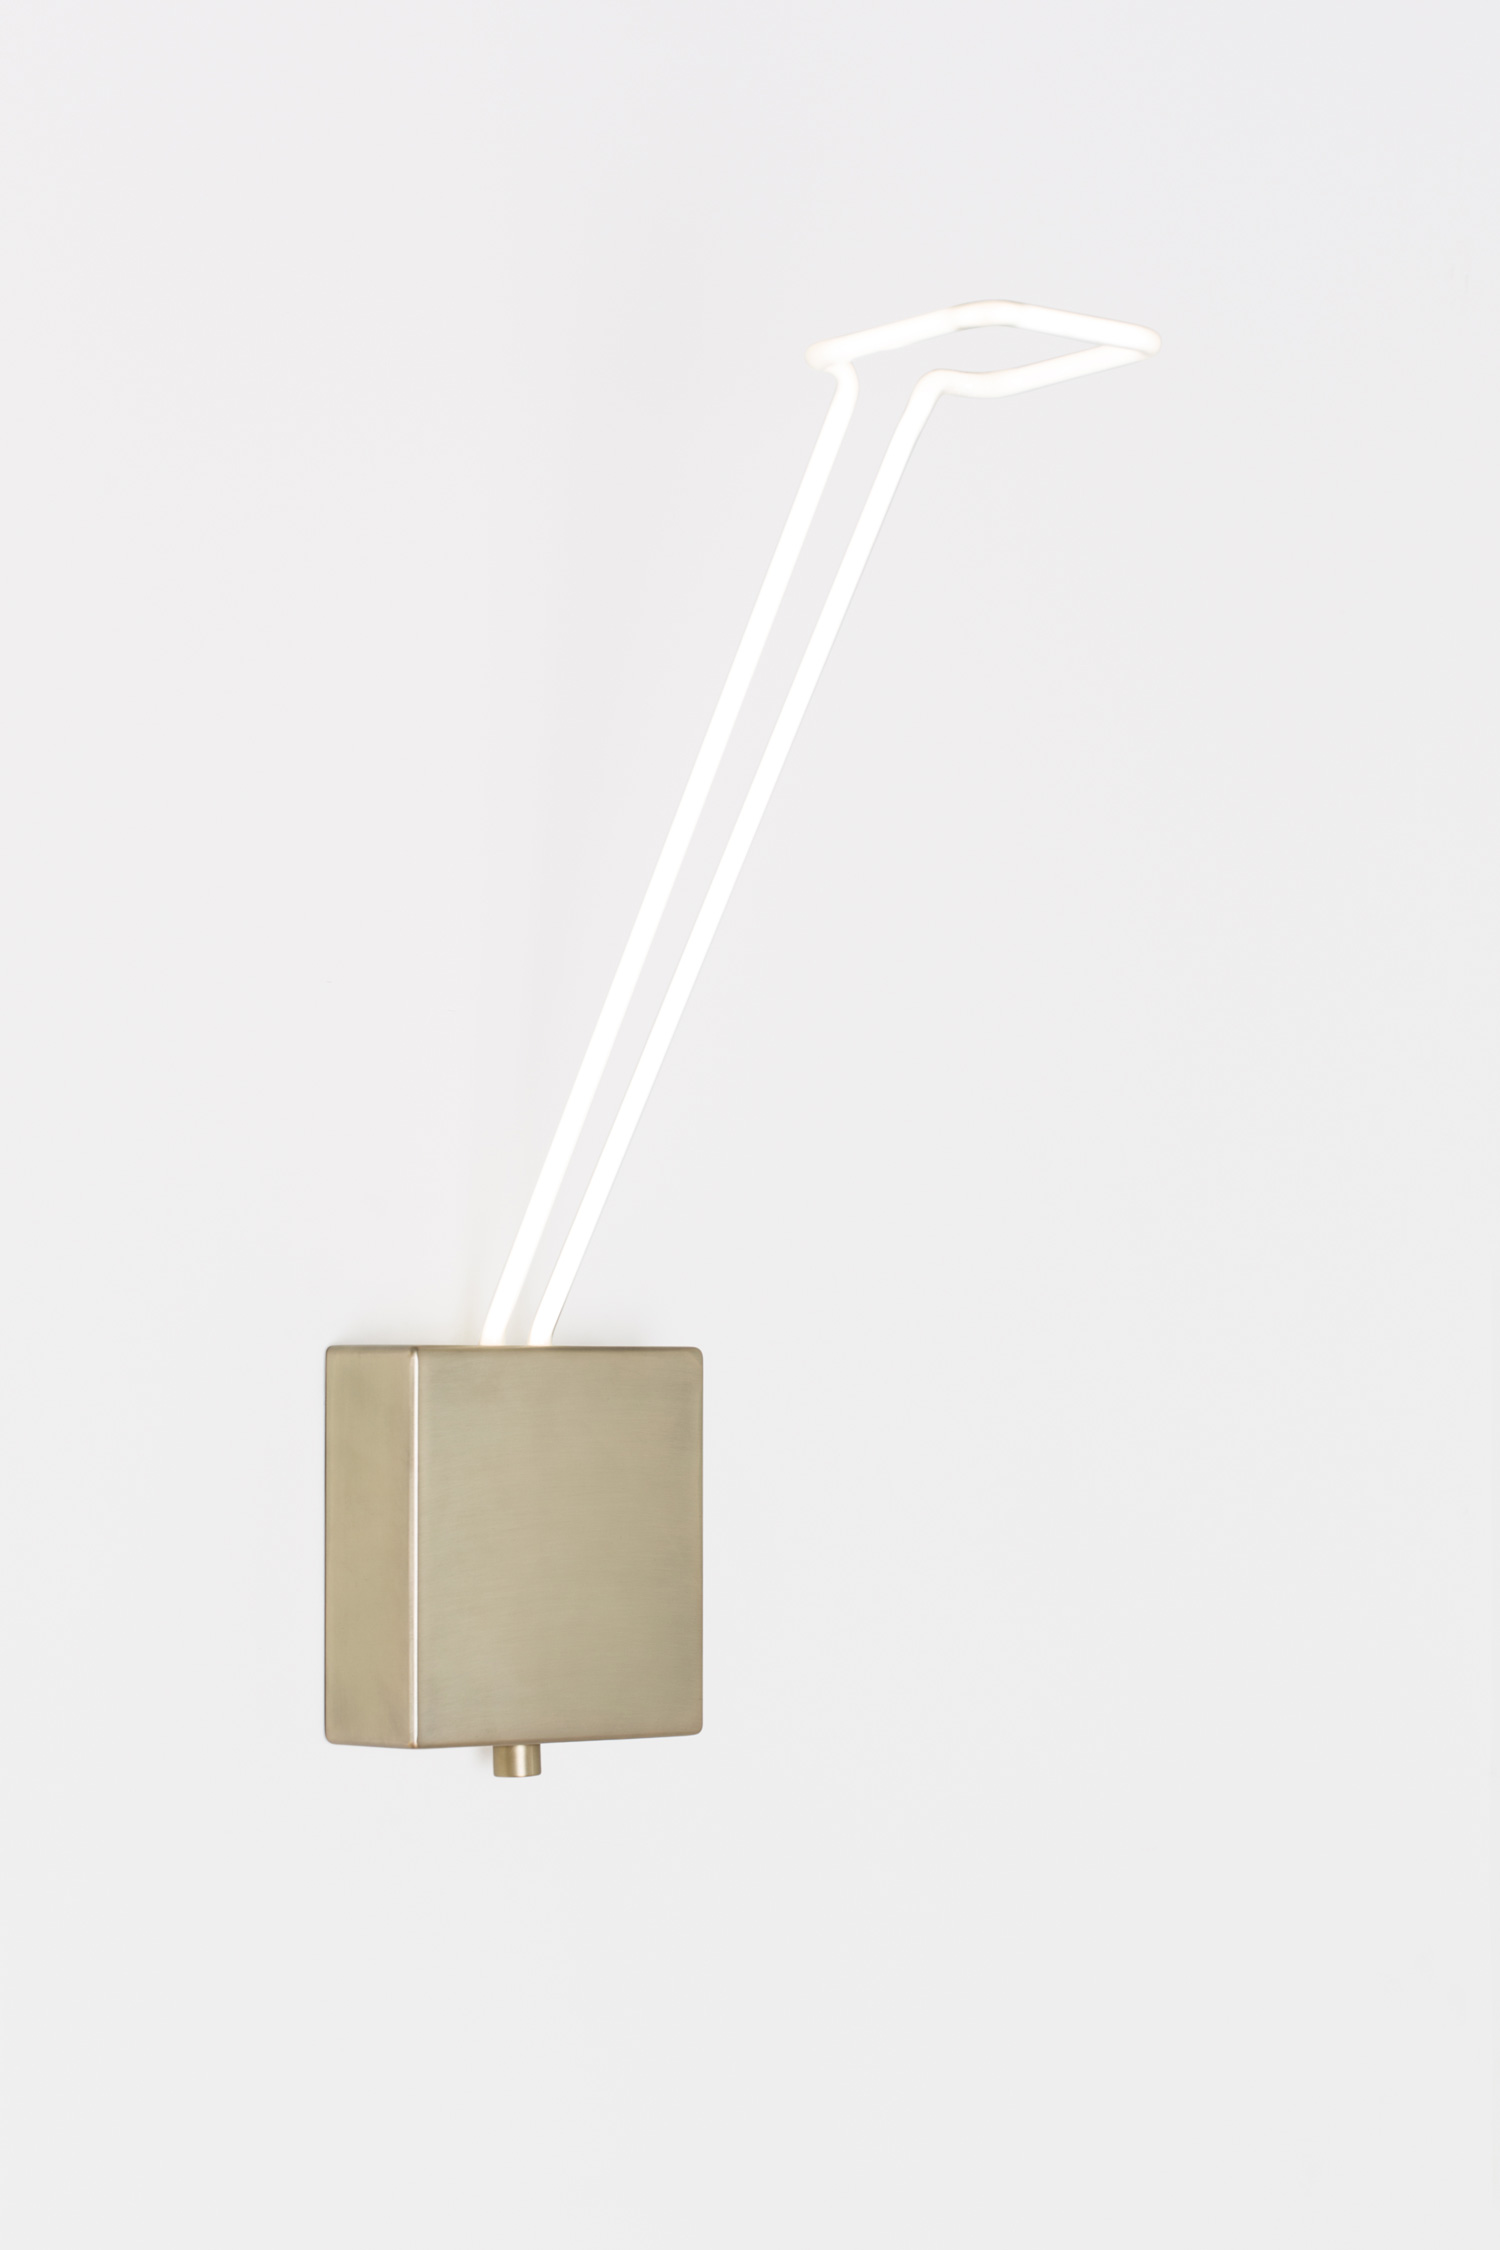 Light Line Sconce by Mary Wallis for Lindsey Adelman | Yellowtrace